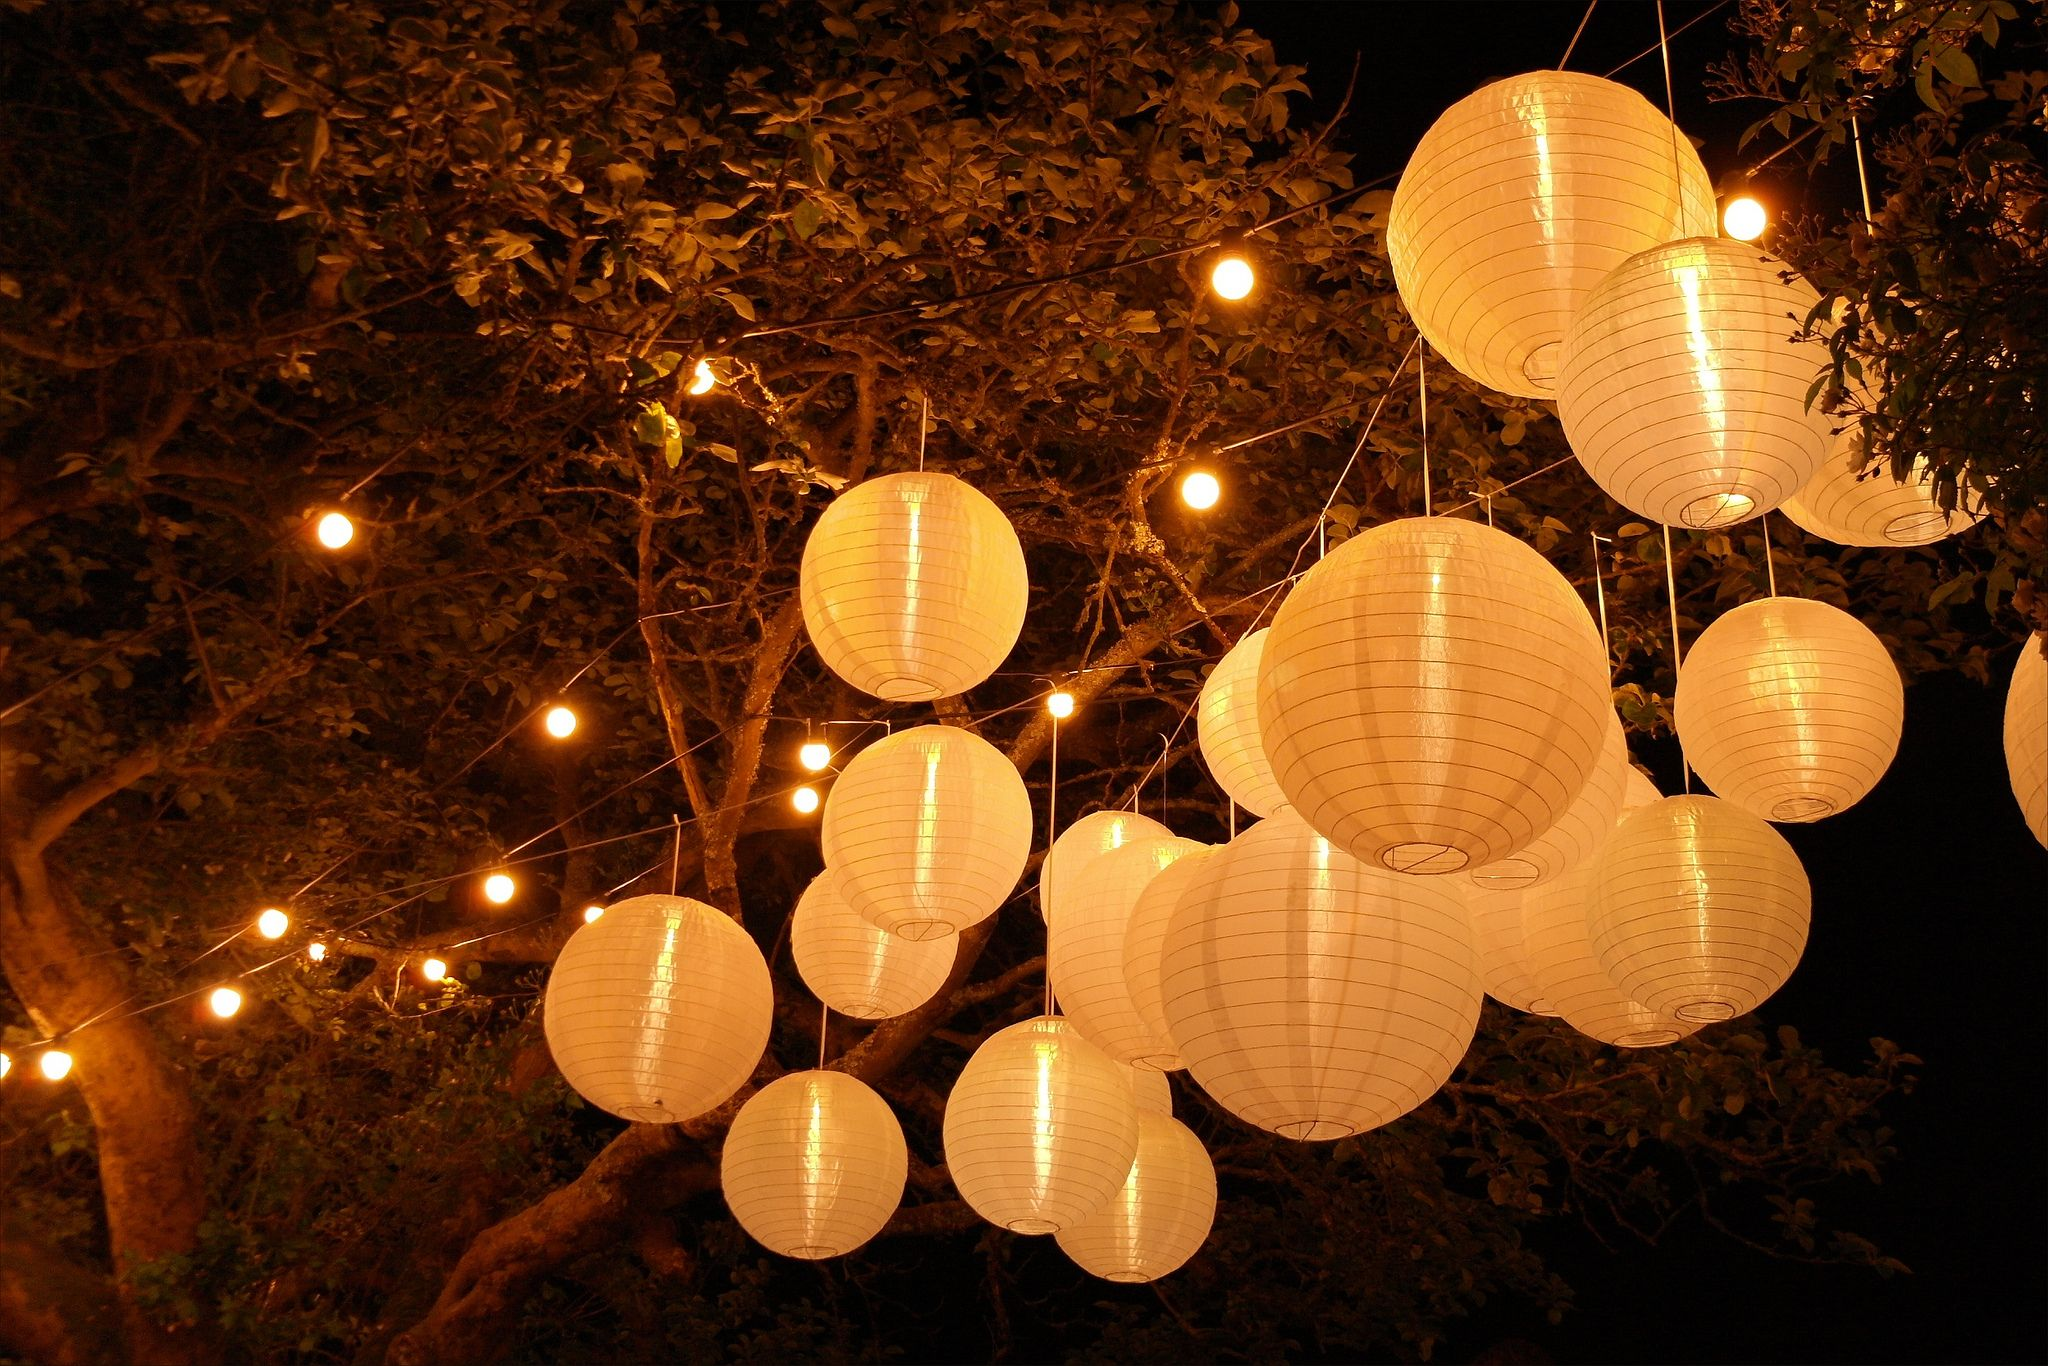 White paper lanterns with lights - Northbrook Park White Paper Lanterns With Internal Light And Festoon Lights By Www Stressfreehire